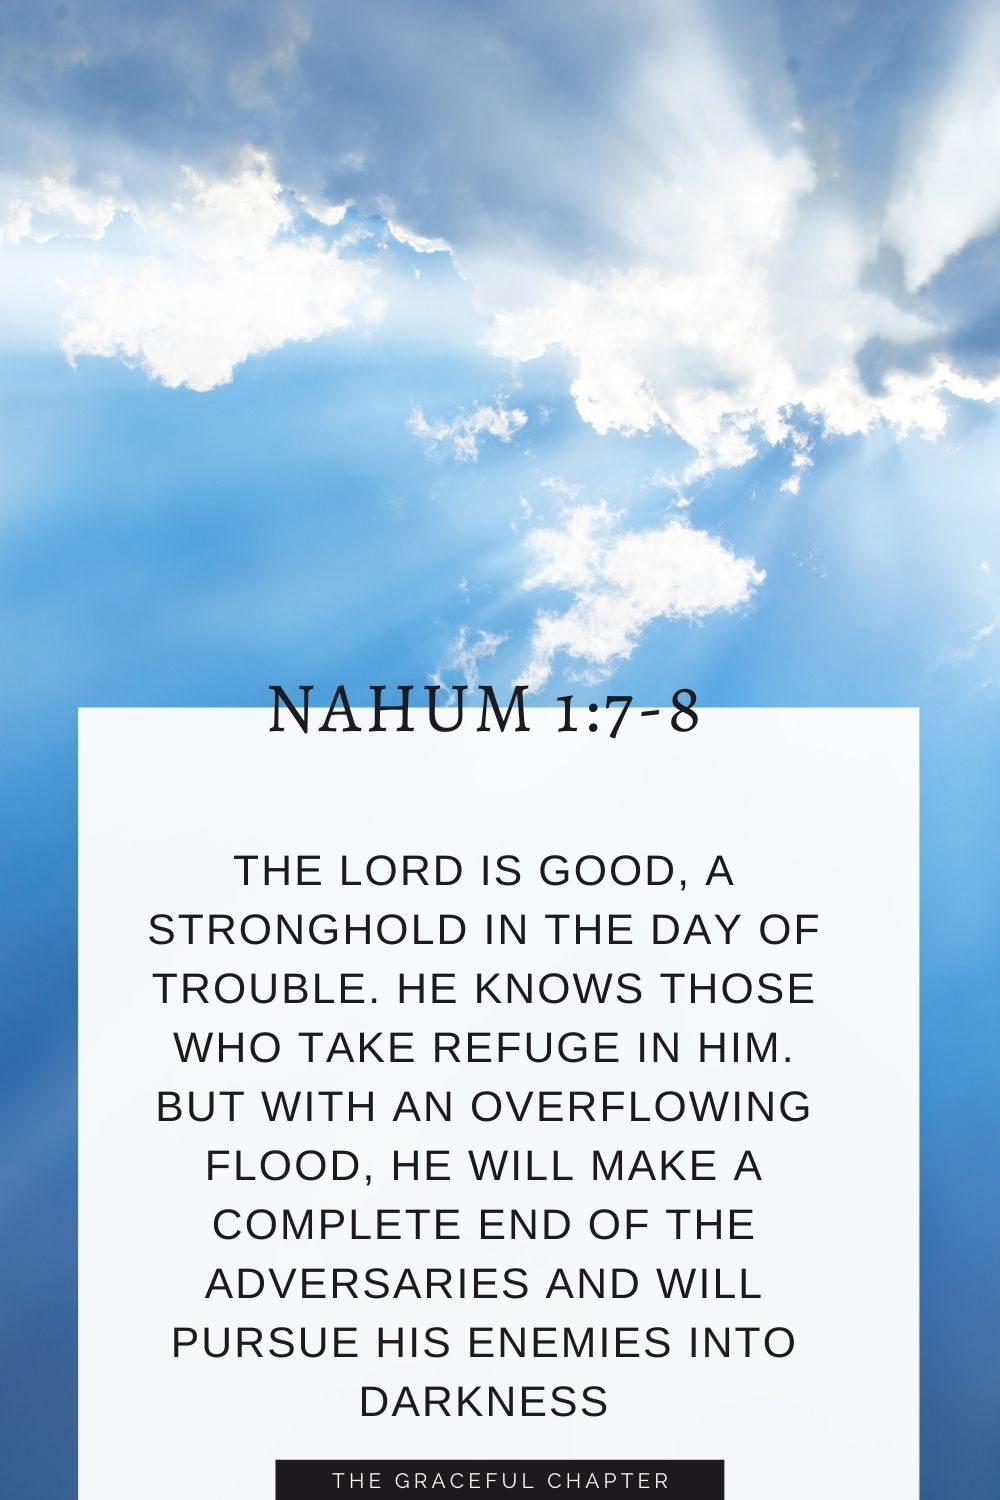 The Lord is good, a stronghold in the day of trouble; he knows those who take refuge in him. But with an overflowing flood he will make a complete end of the adversaries, and will pursue his enemies into darkness Nahum 1:7-8